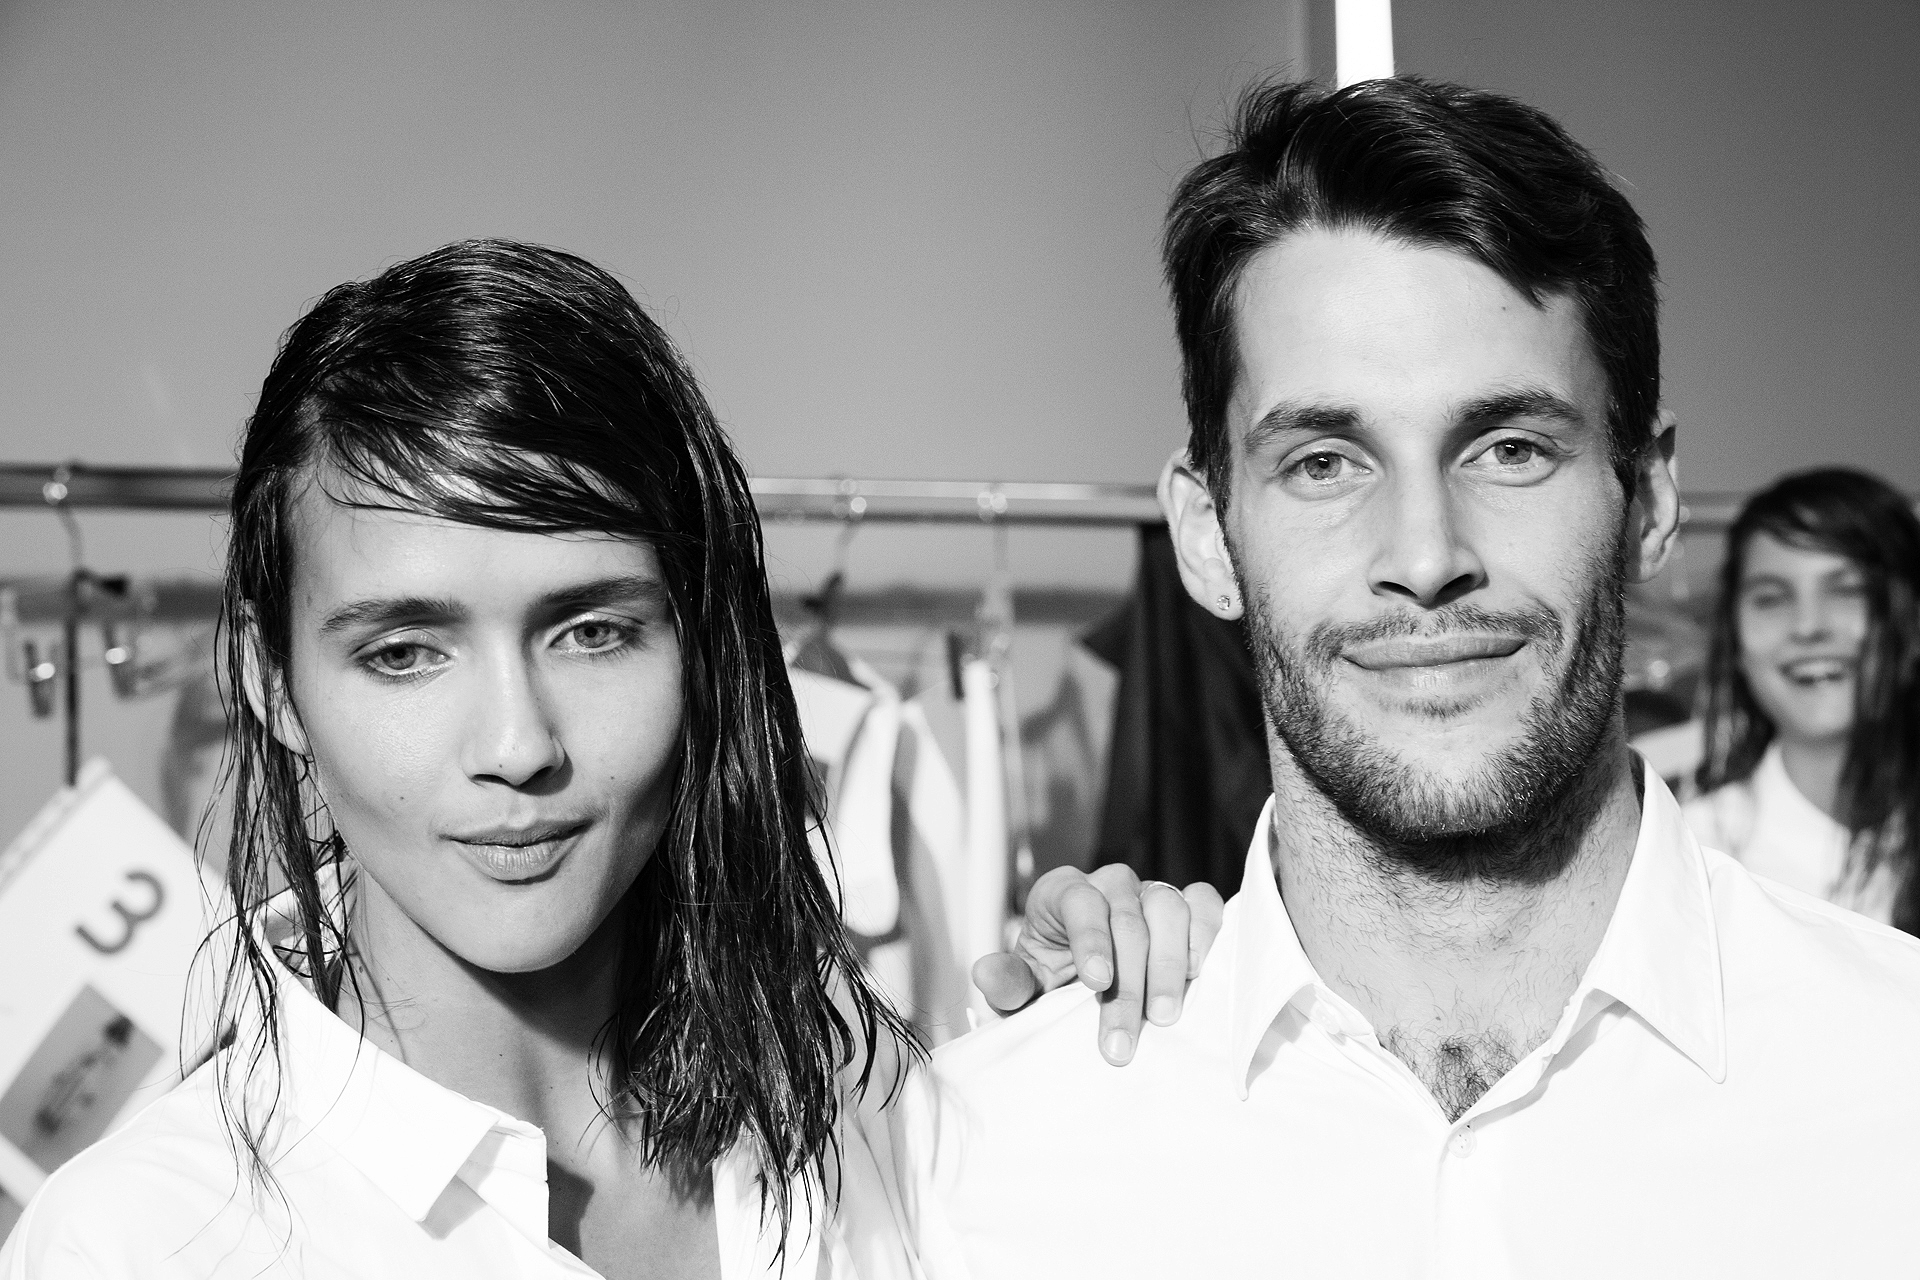 04-jacquemus-ss15-backstage